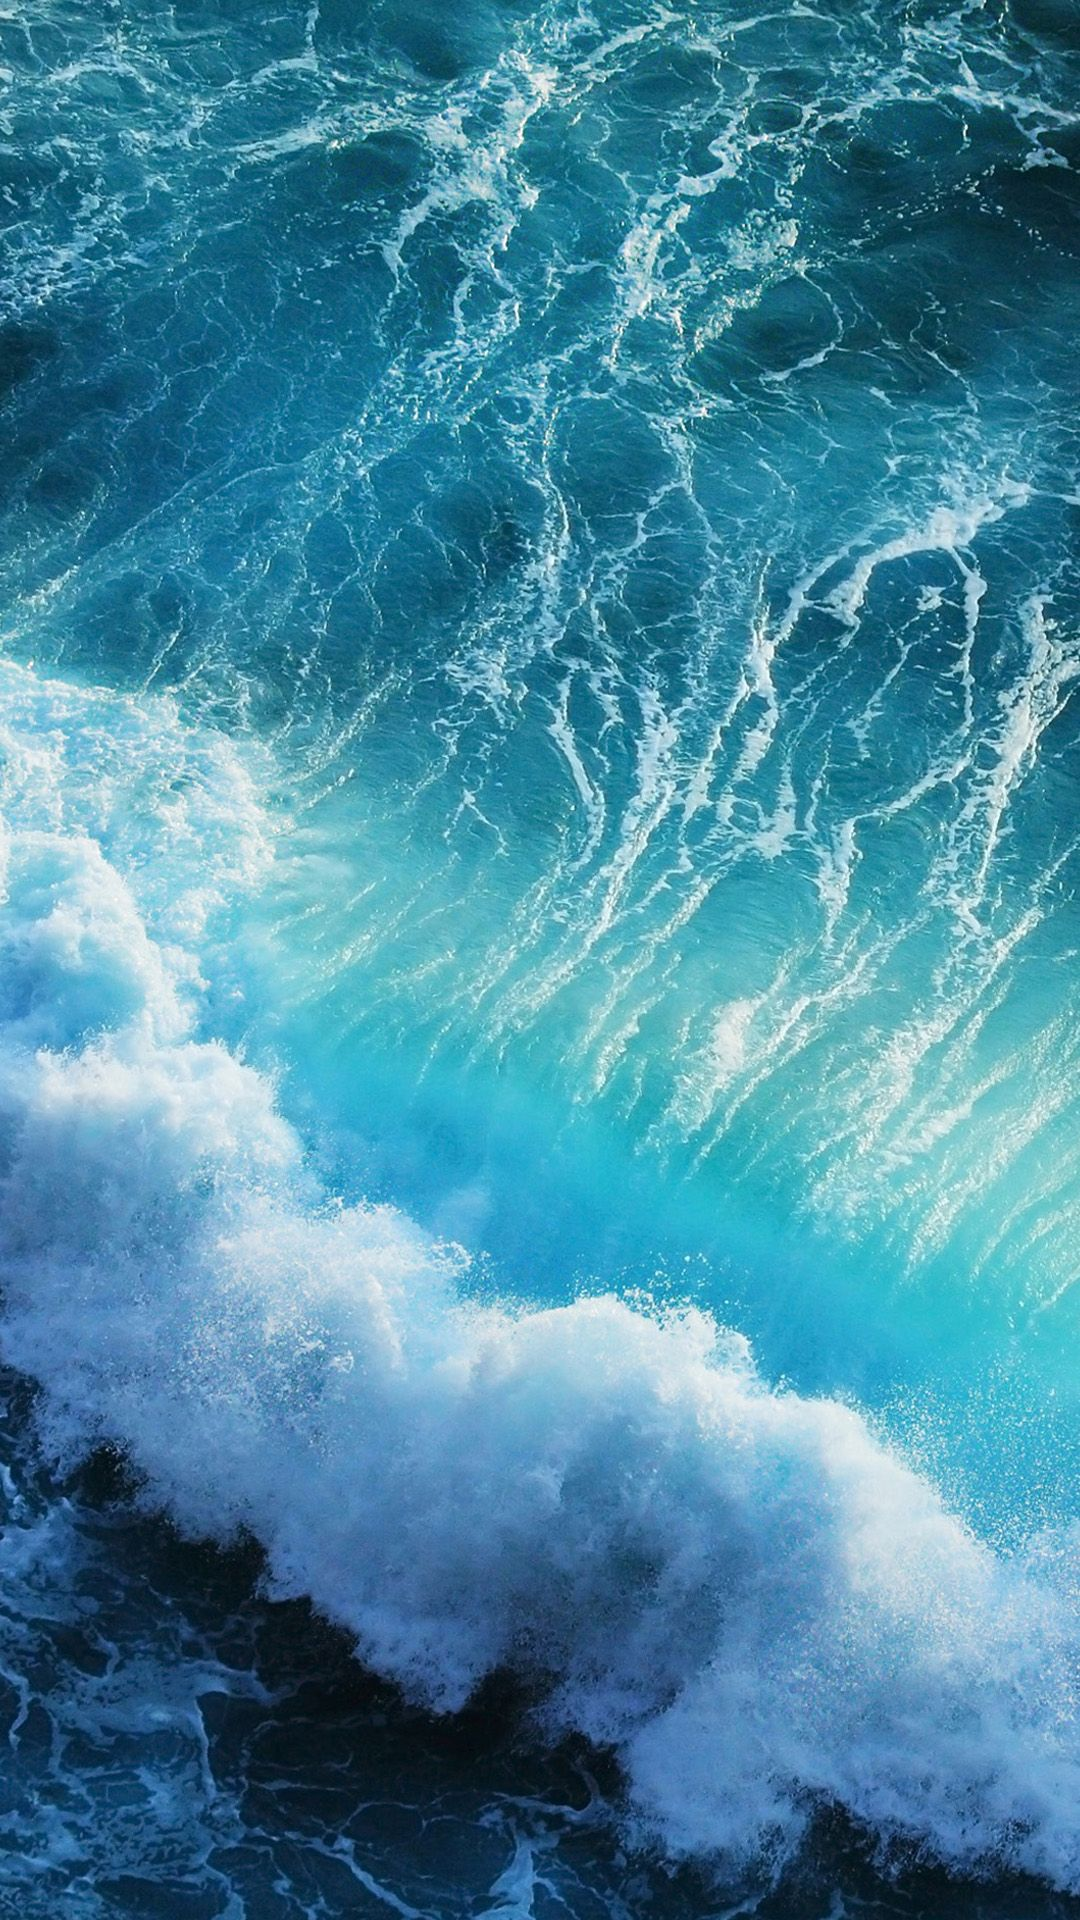 Blue Sea Water Wallpapers For Iphone 6 Plus Iphone 6 Wallpaper